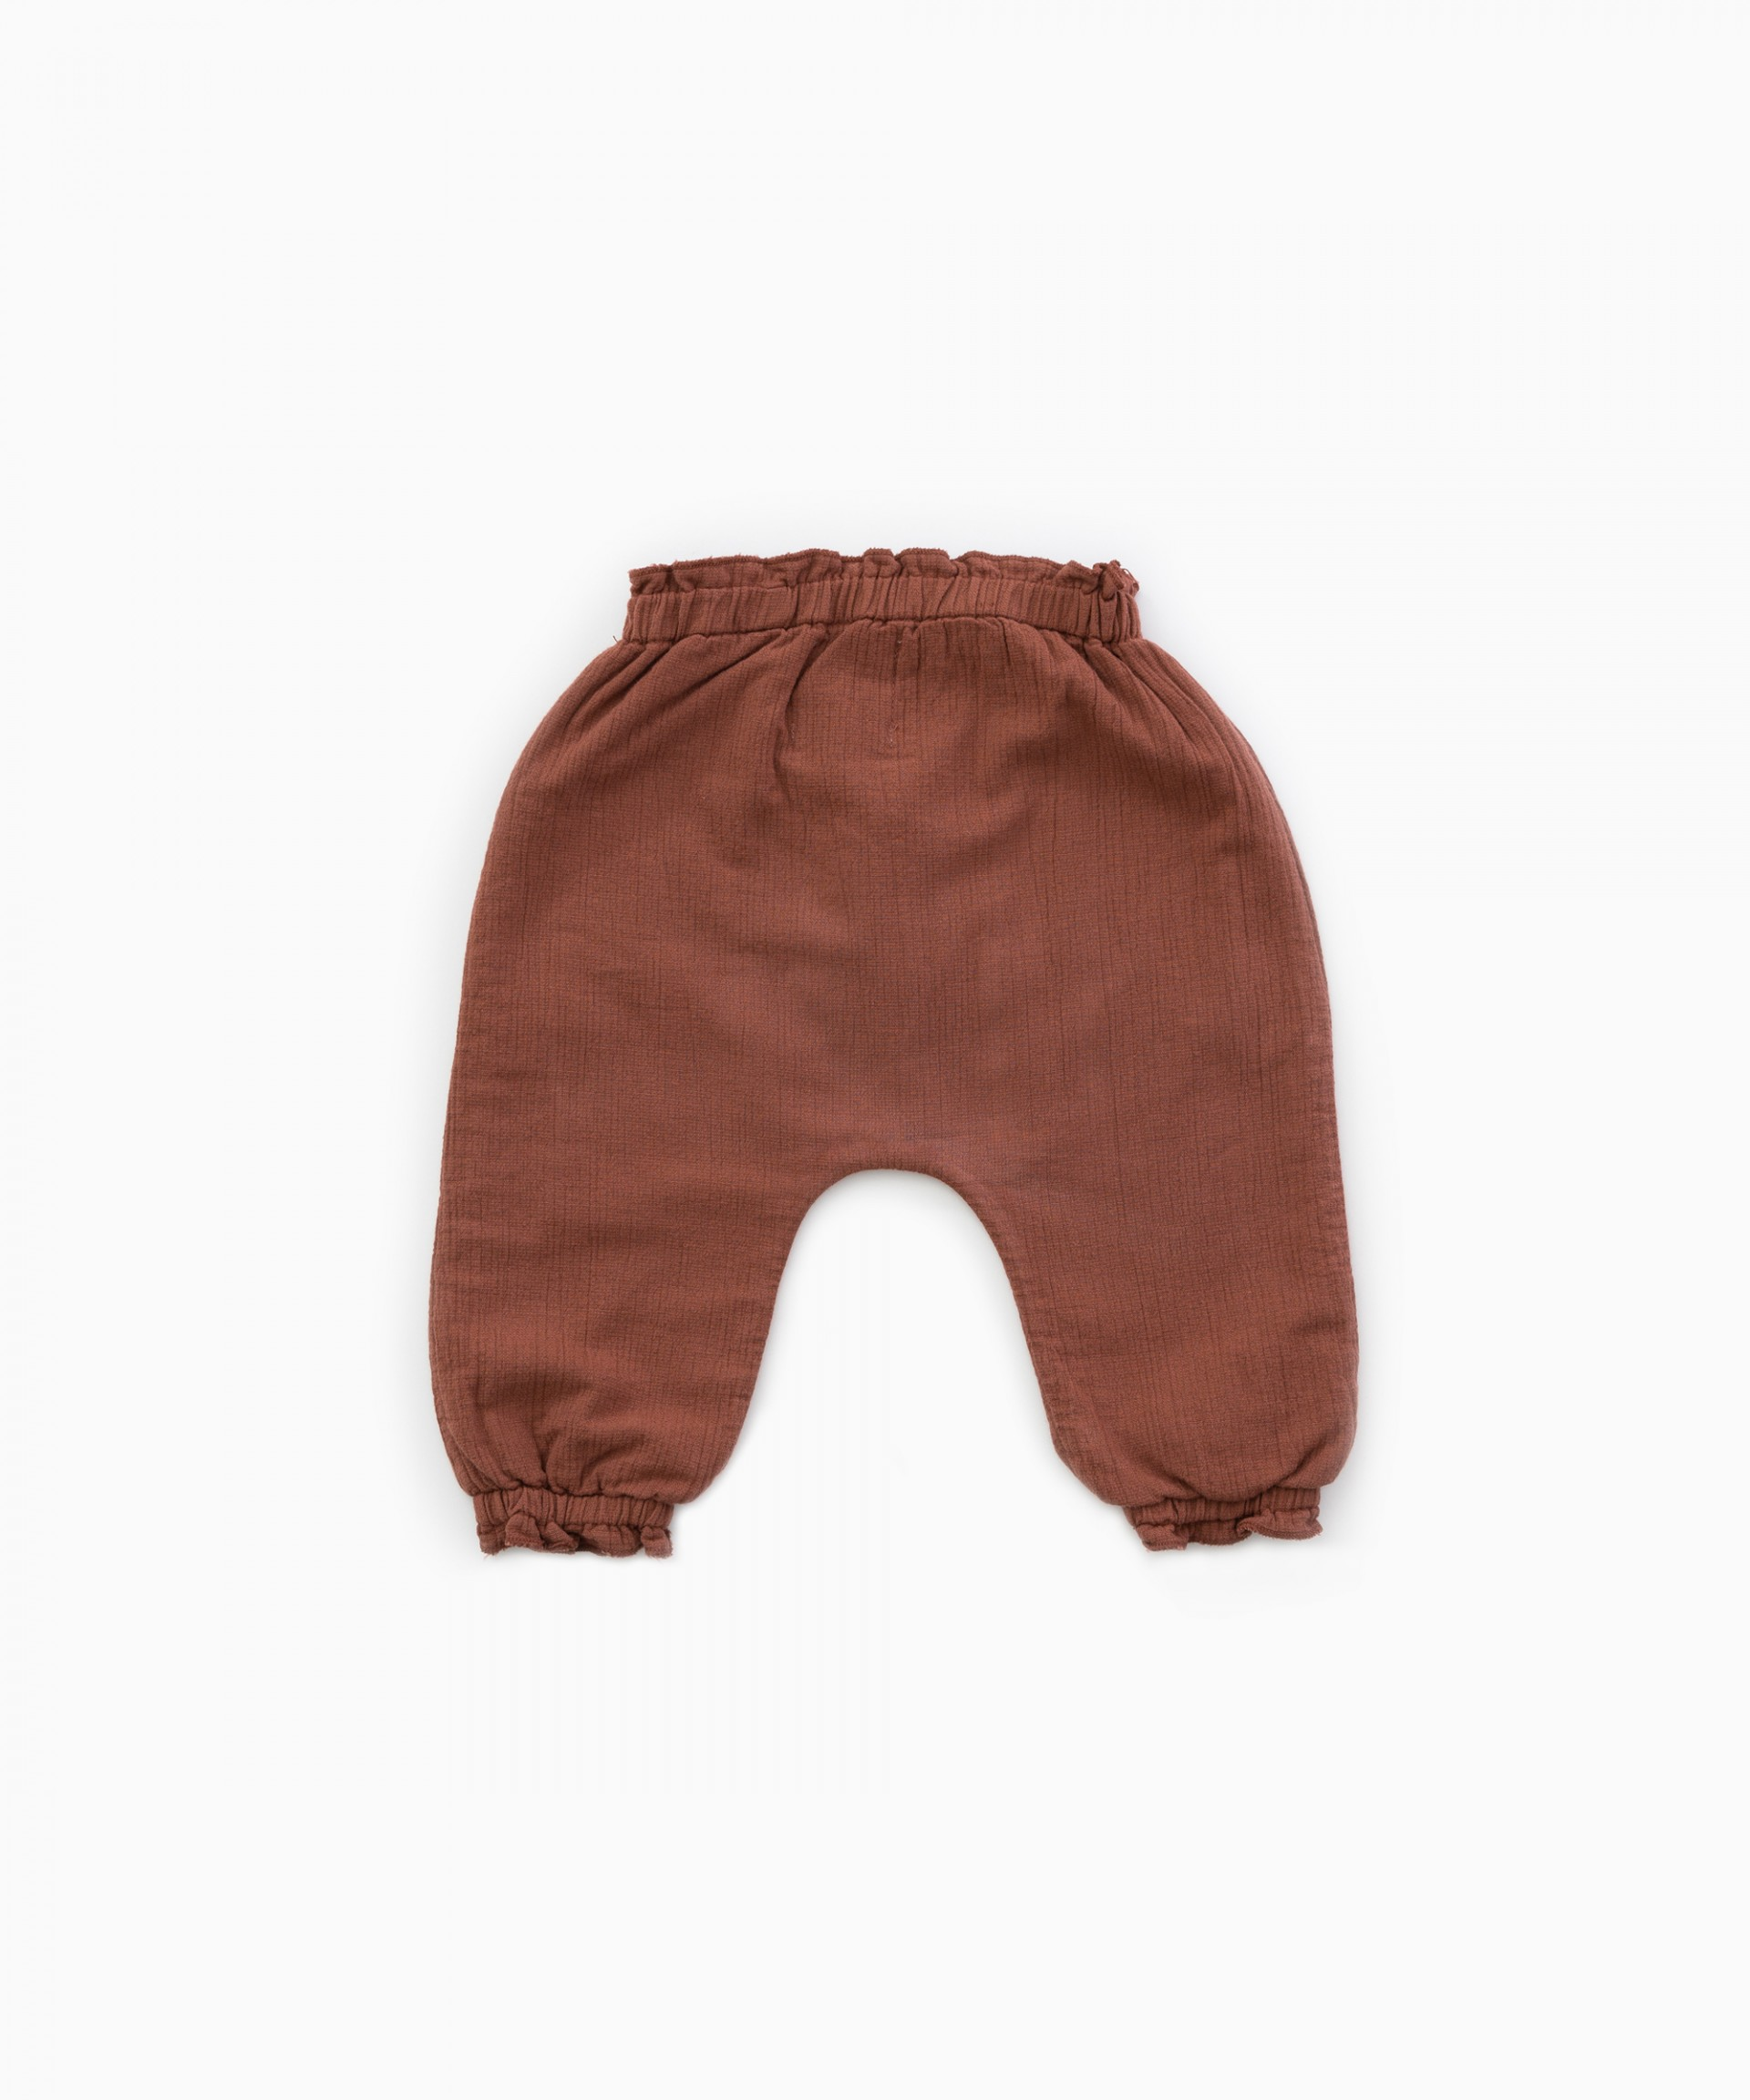 Cloth trousers with jersey stitch lining | Woodwork